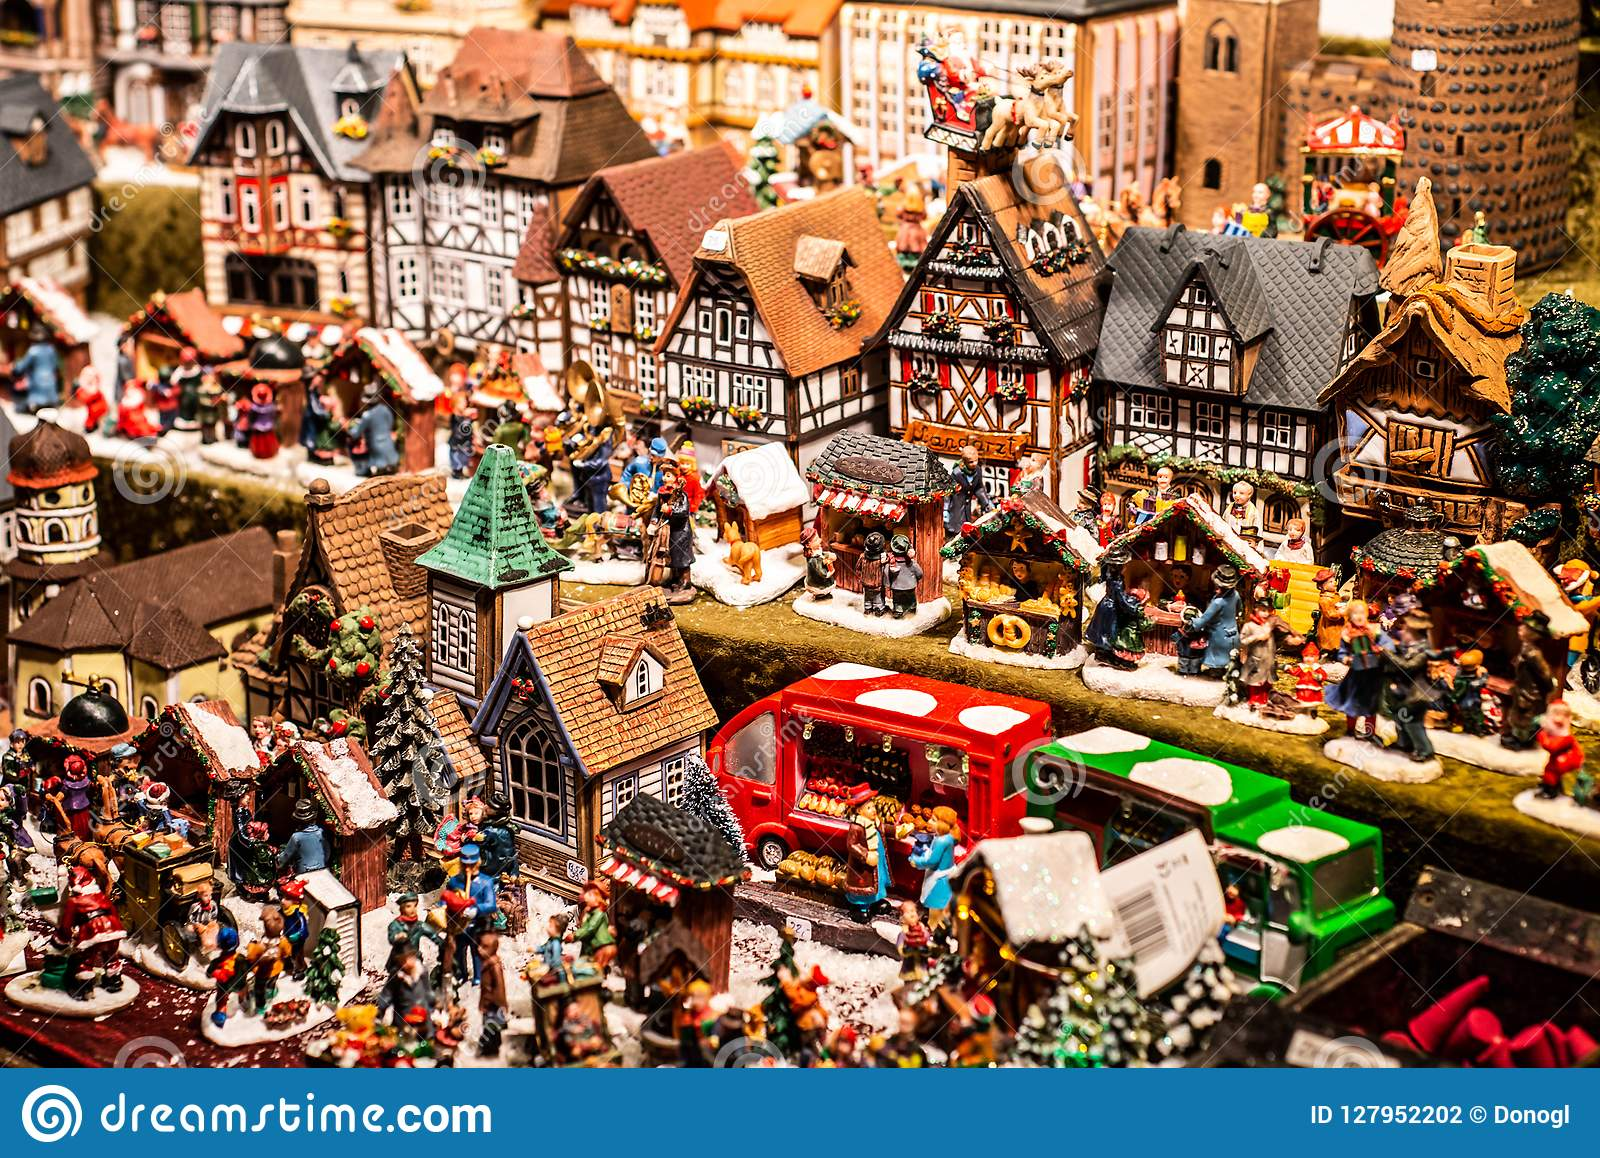 Traditional Souvenirs and toys like smal model houses At European Winter Christmas Market Wooden Souvenir